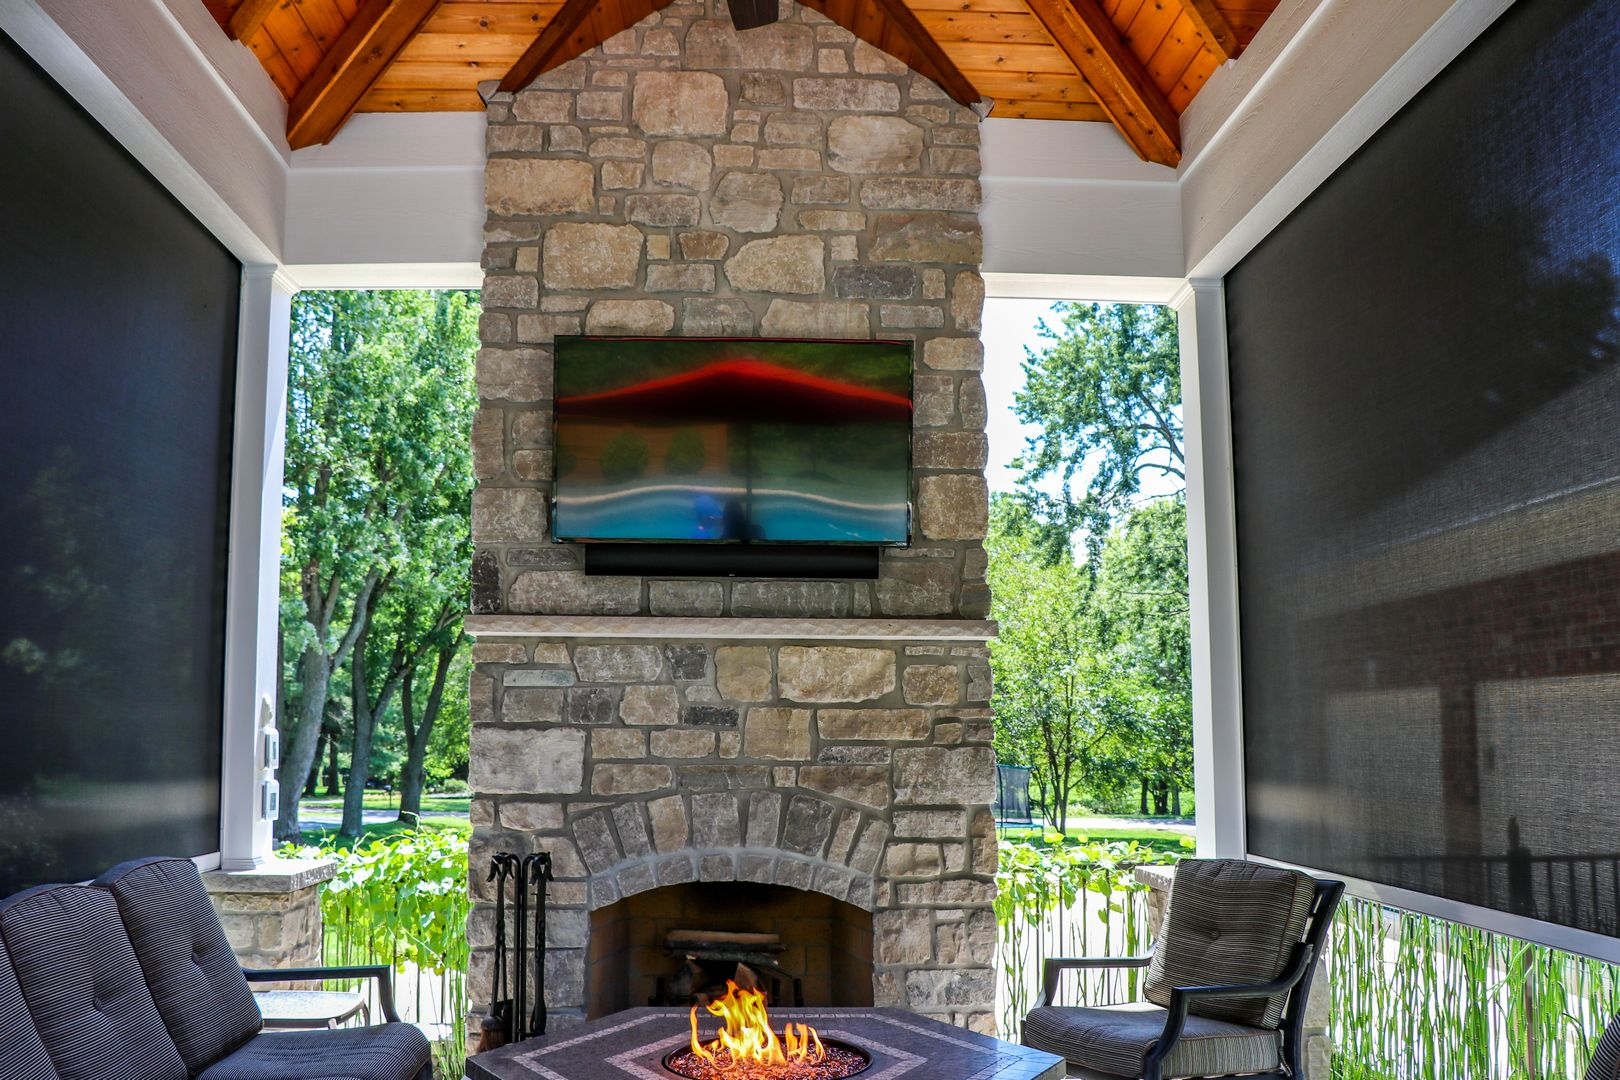 Fireplace with retractable screens that help provide warmth during the cooler seasons